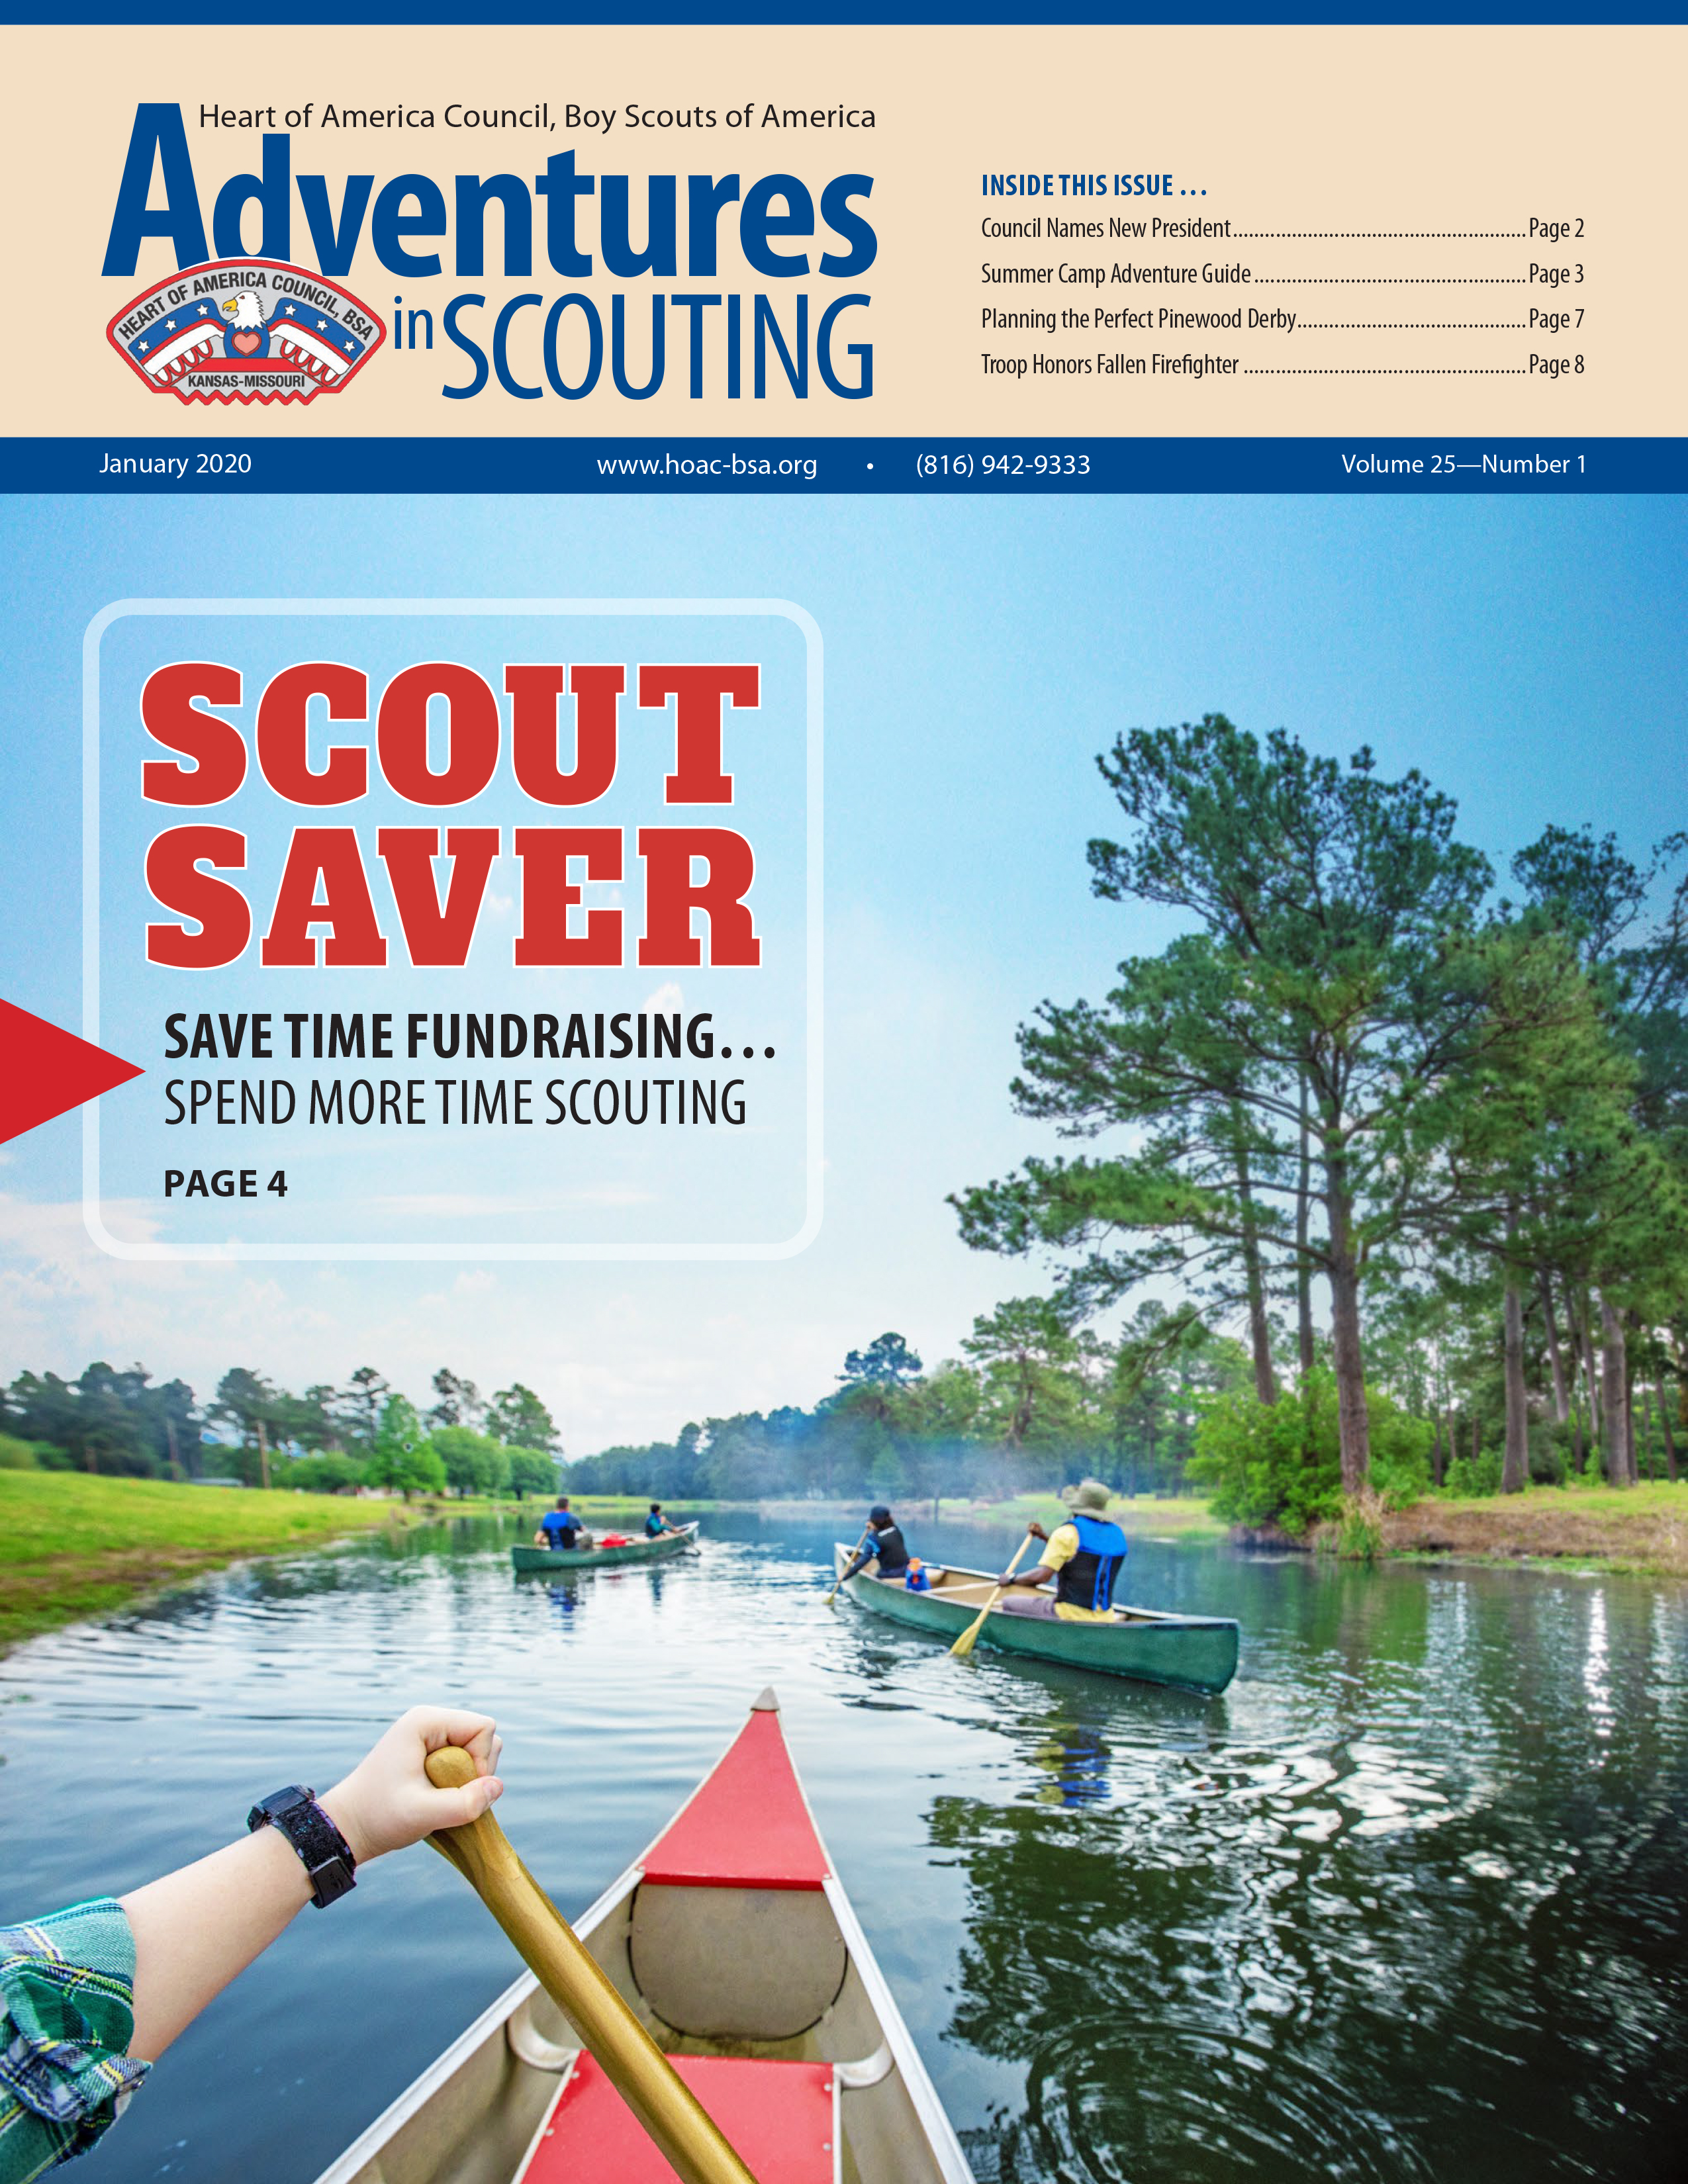 January Adventures in Scouting E-News